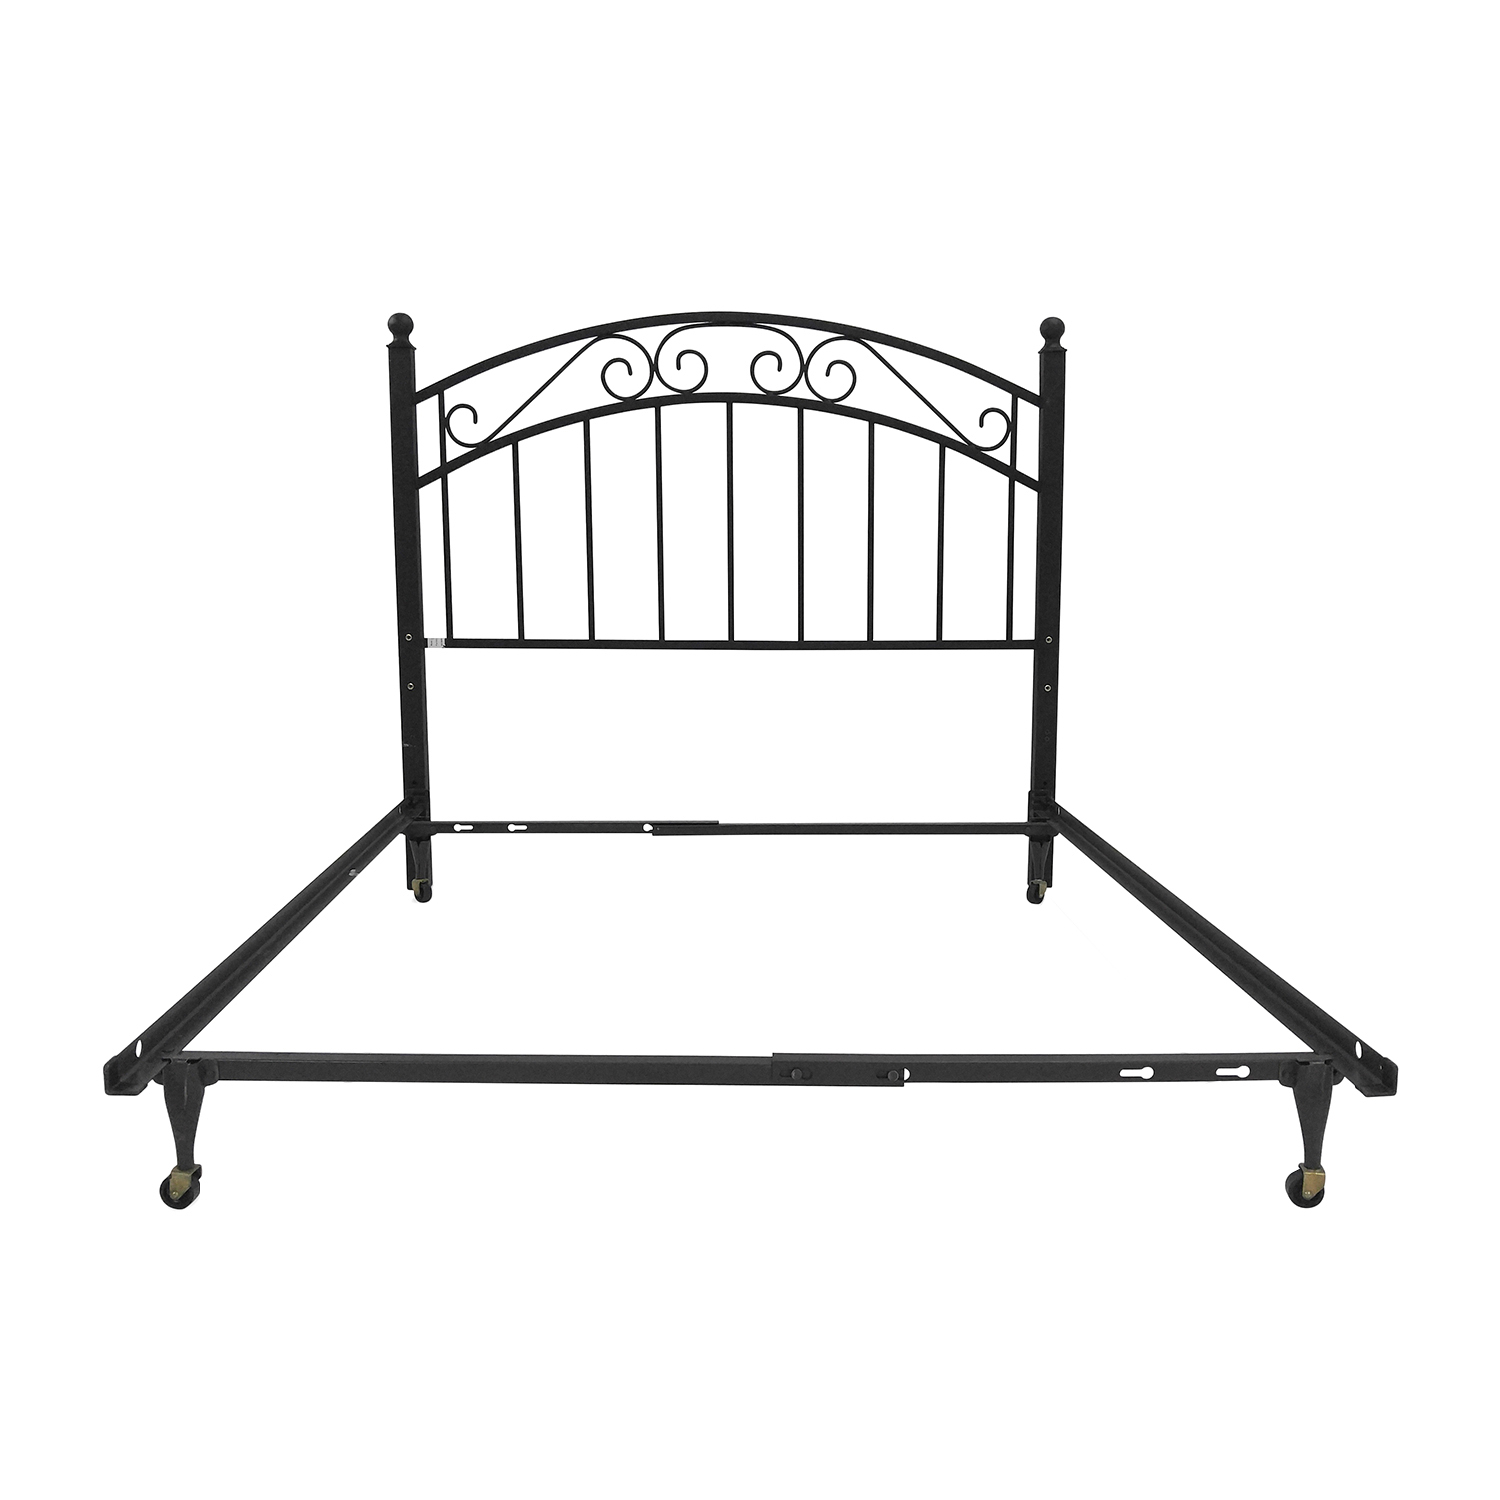 crate and barrel crate and barrel full iron bed frame and headboard